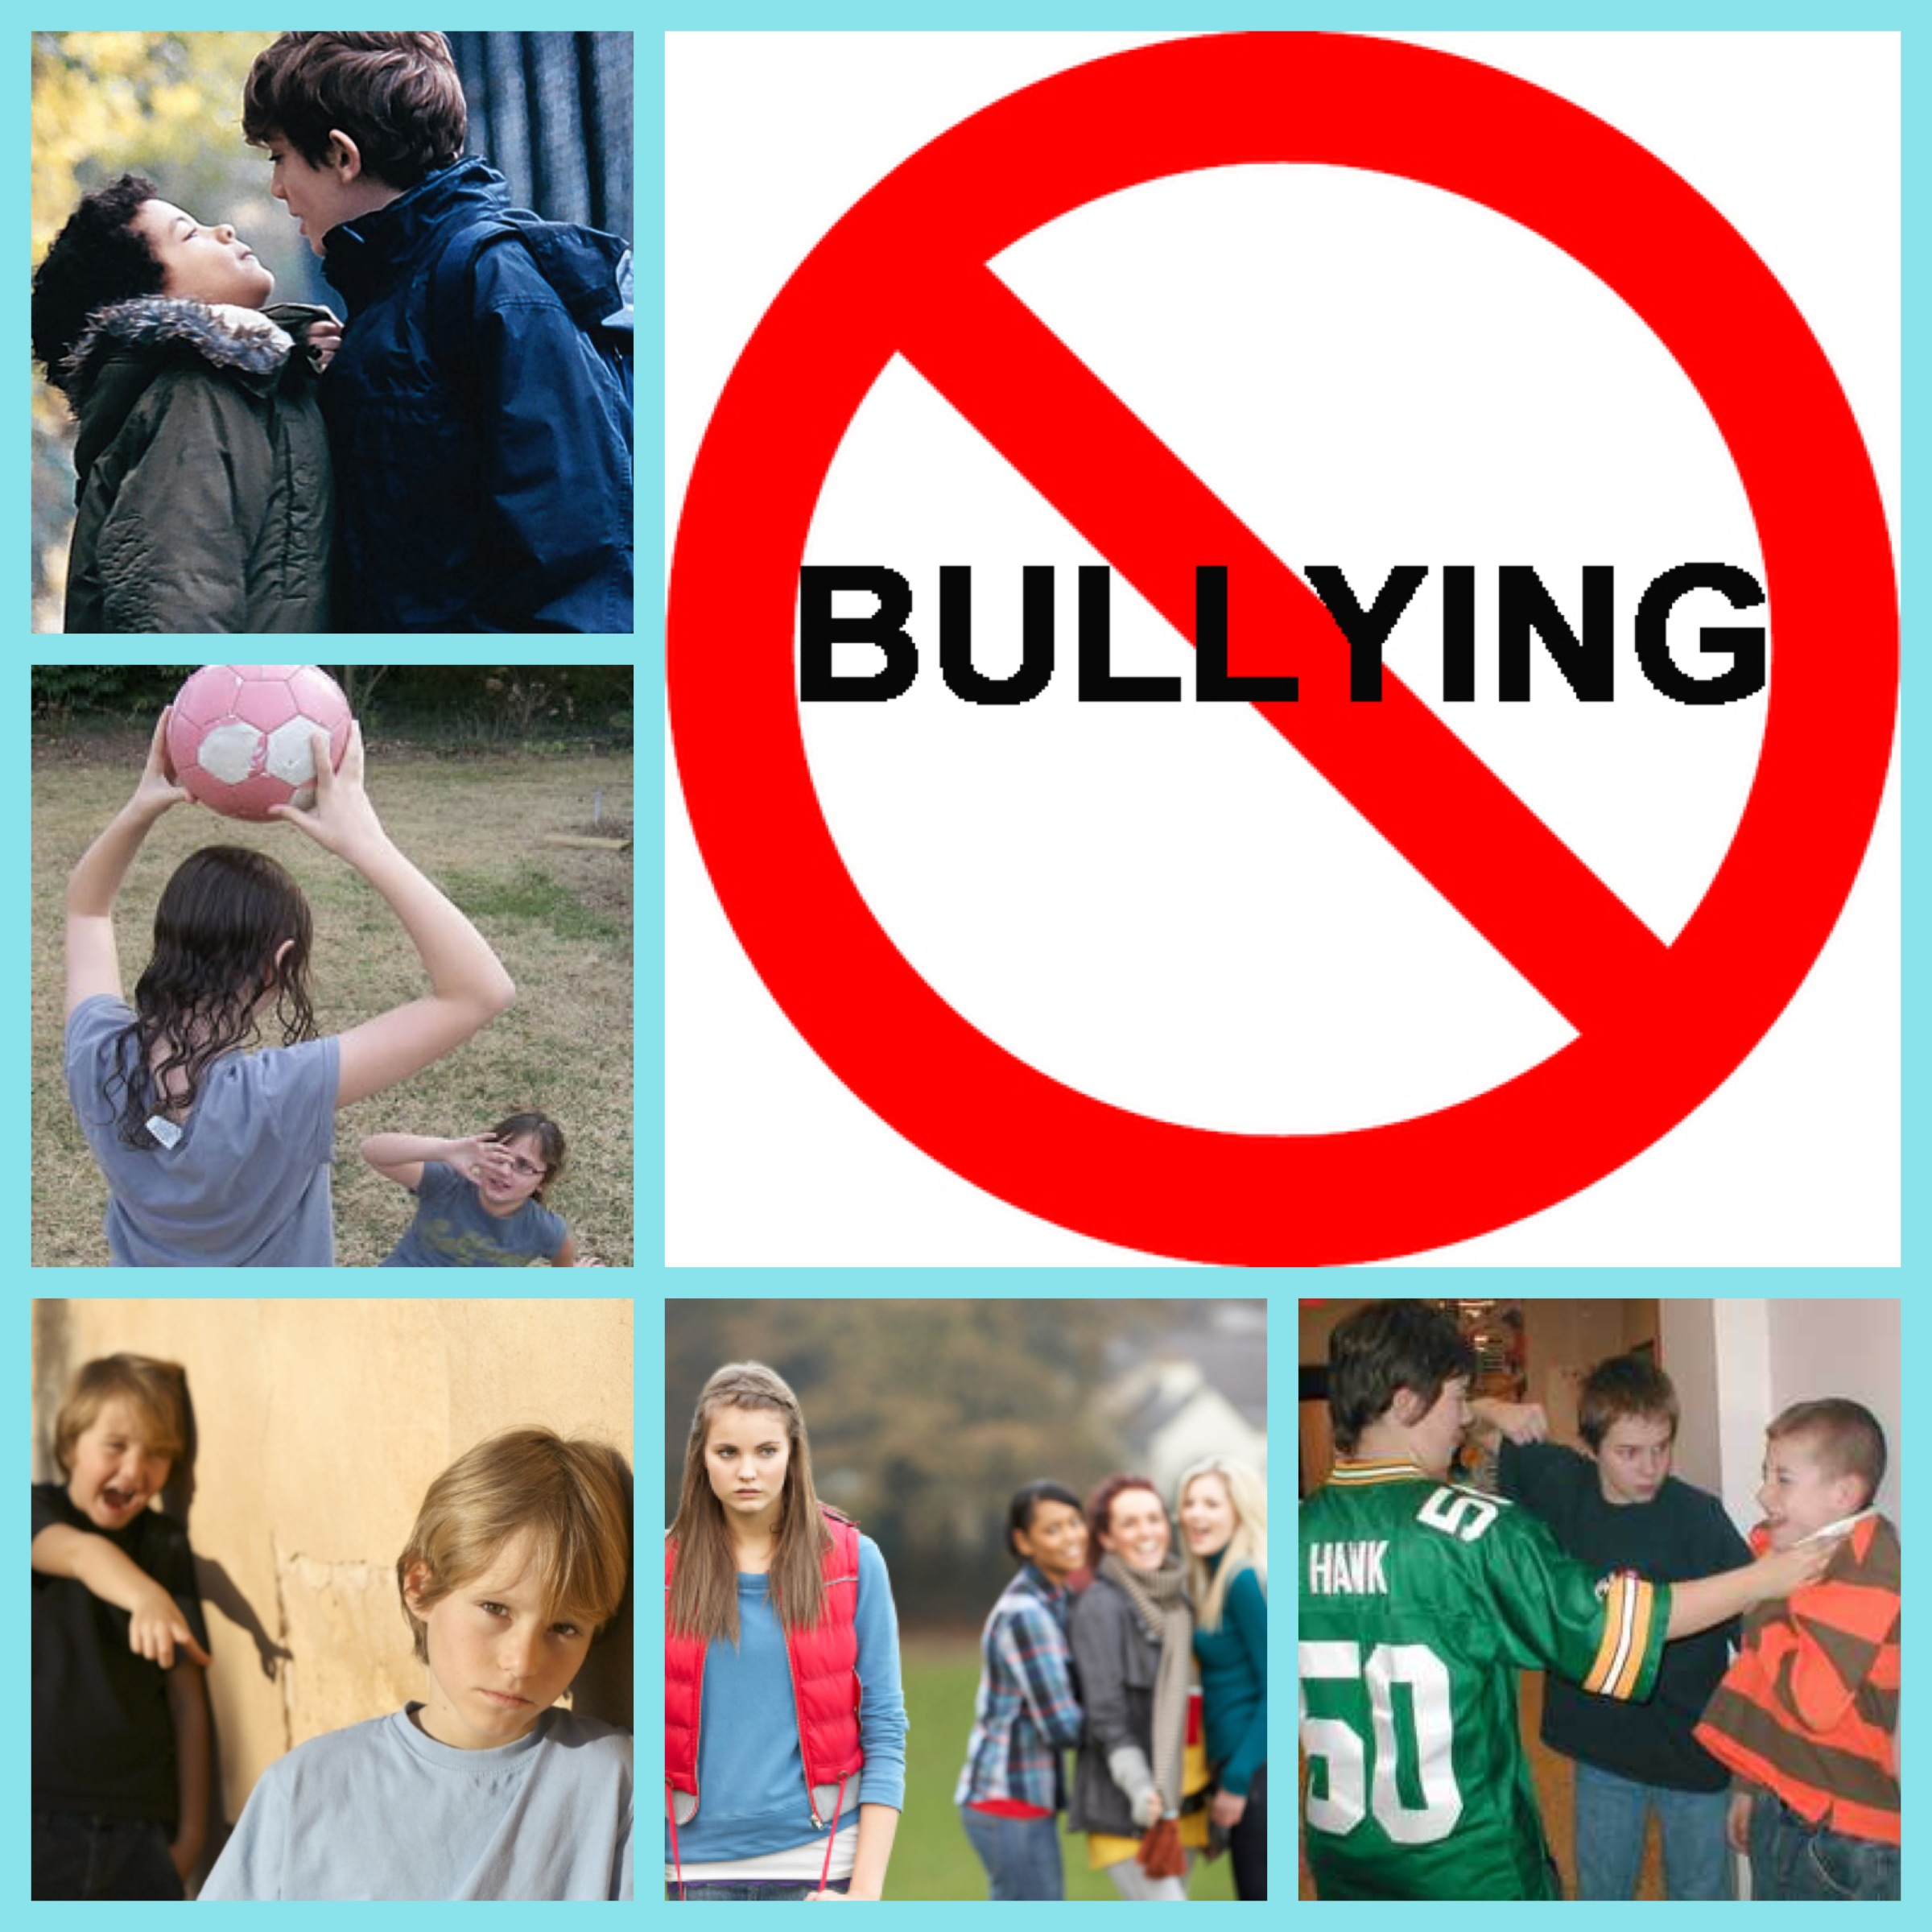 http://pinoykidsmd.files.wordpress.com/2012/10/anti-bullying-collage.jpg